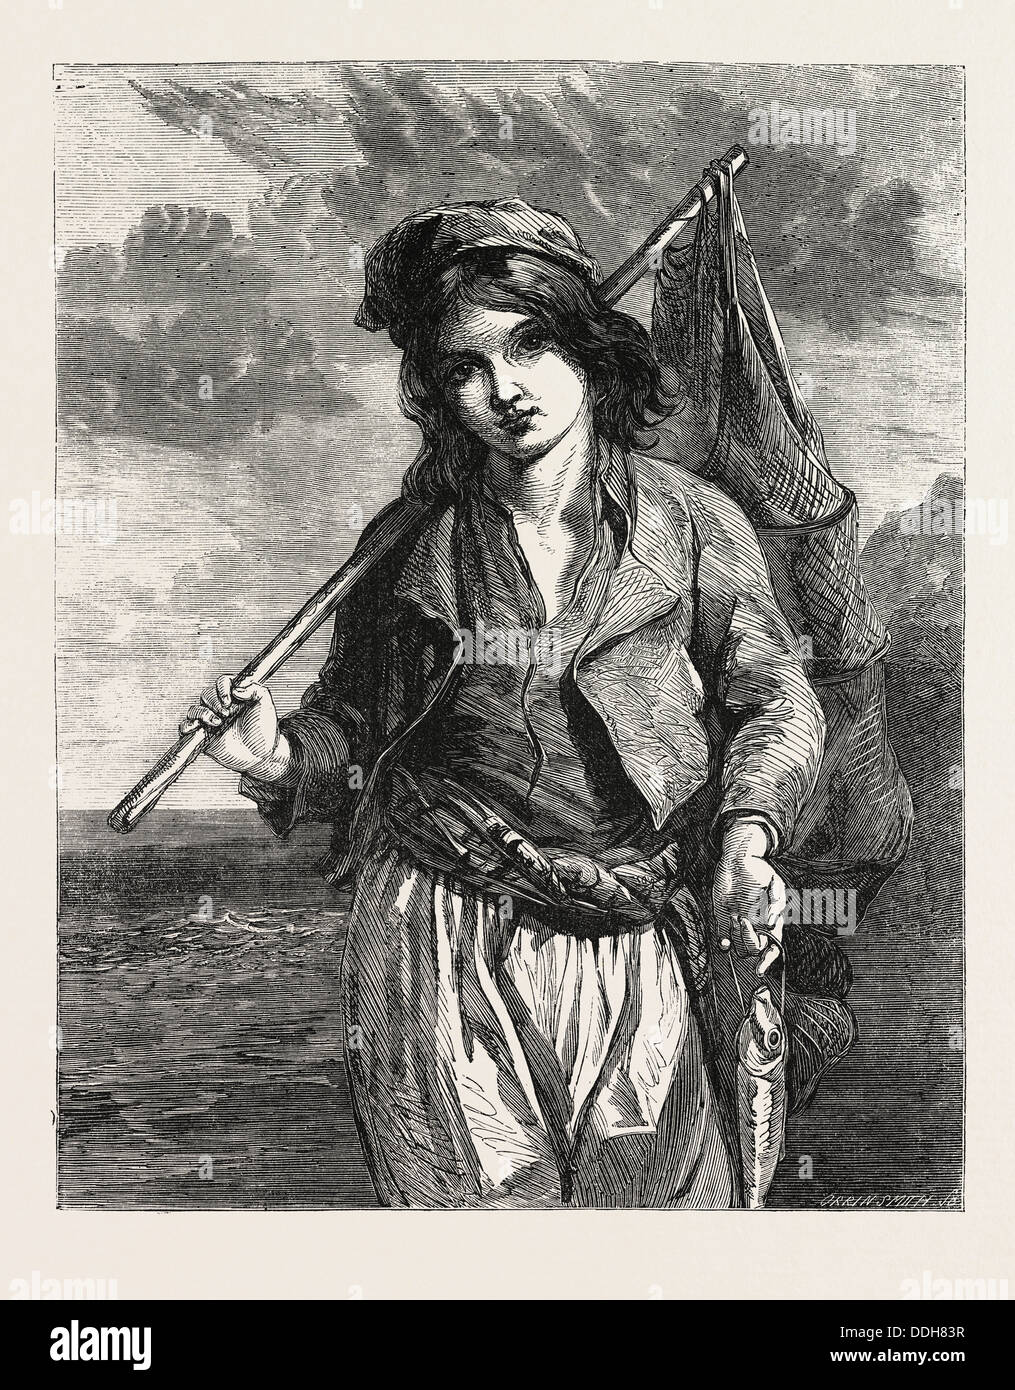 A NEAPOLITAN FISHER BOY. PAINTED BY G.F. HURLSTONE. EXHIBITION OF THE SOCIETY OF BRITISH ARTISTS IN SUFFOLK STREET, LONDON, UK - Stock Image